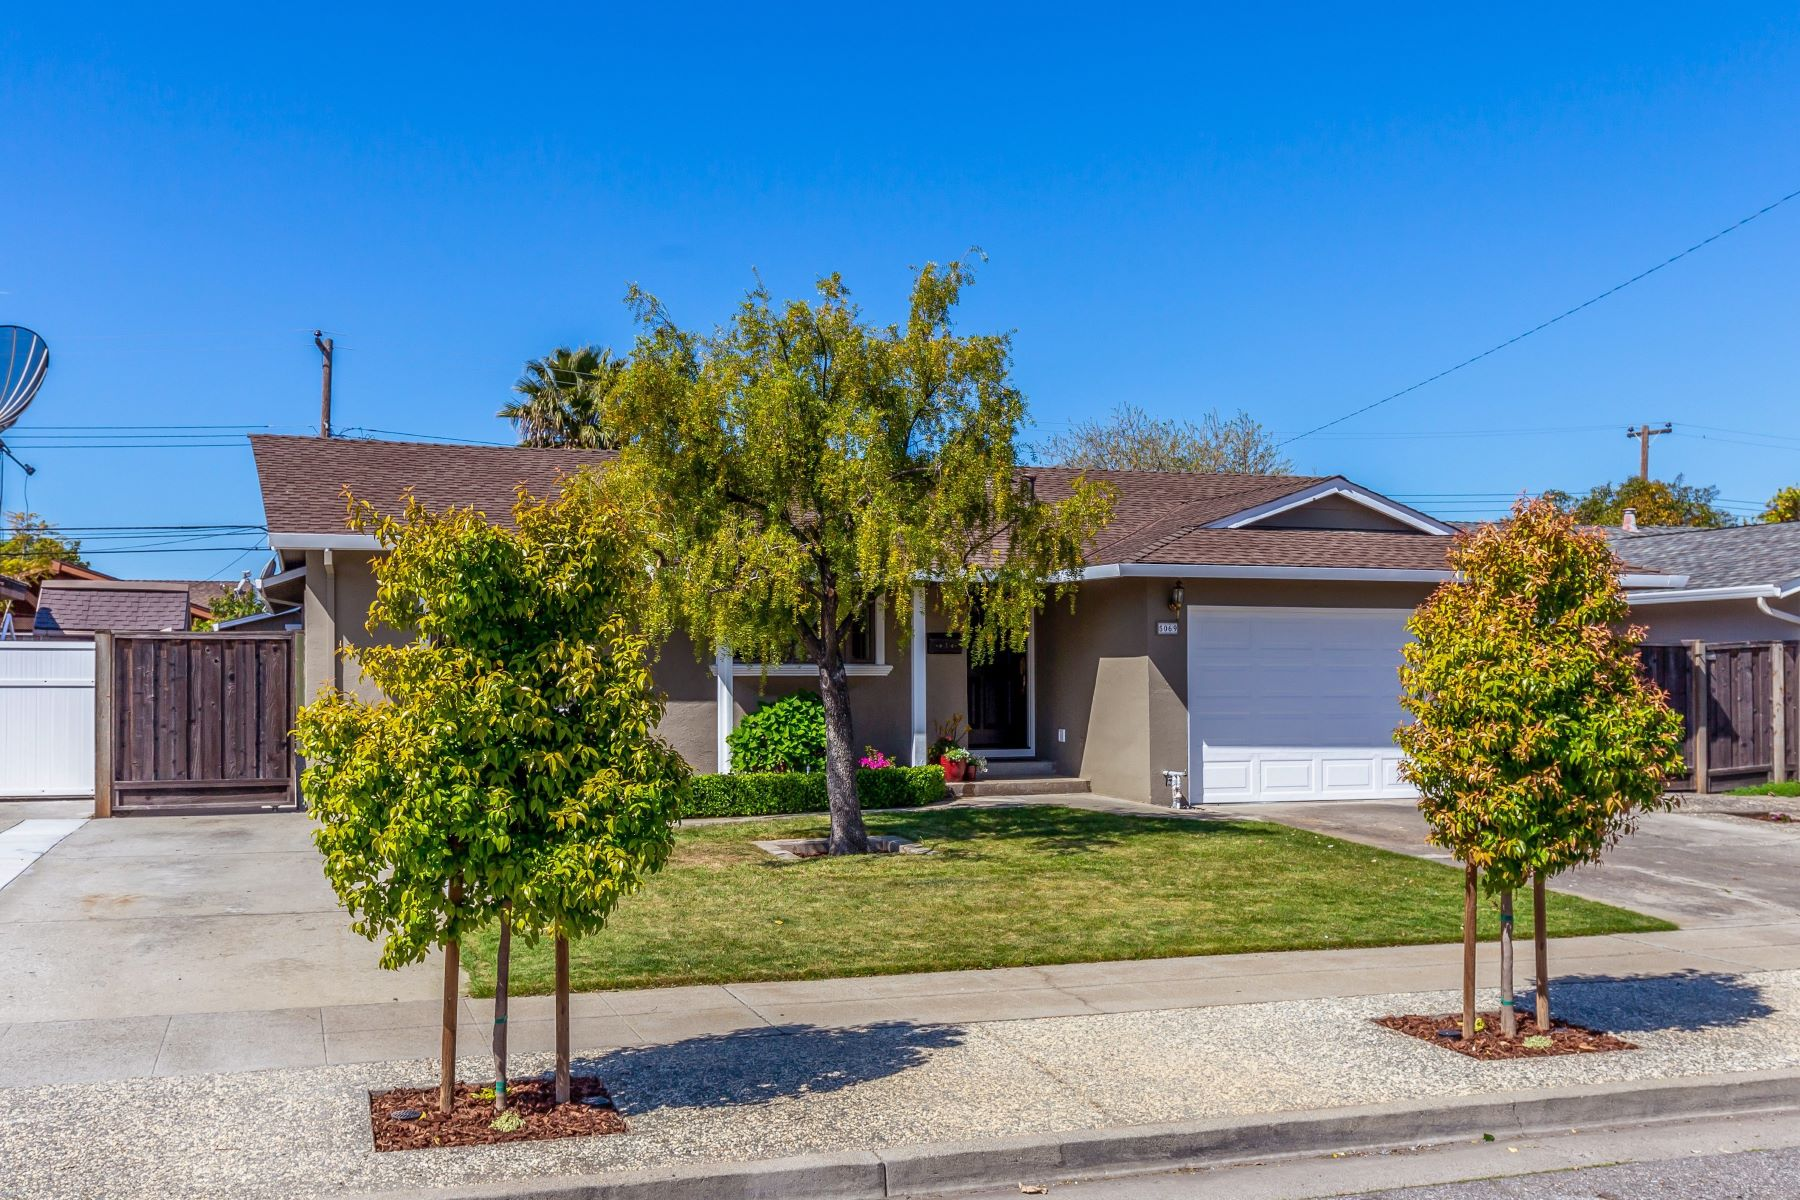 Single Family Homes for Sale at Fabulous Cambrian Home! 5069 Corbin Avenue San Jose, California 95118 United States